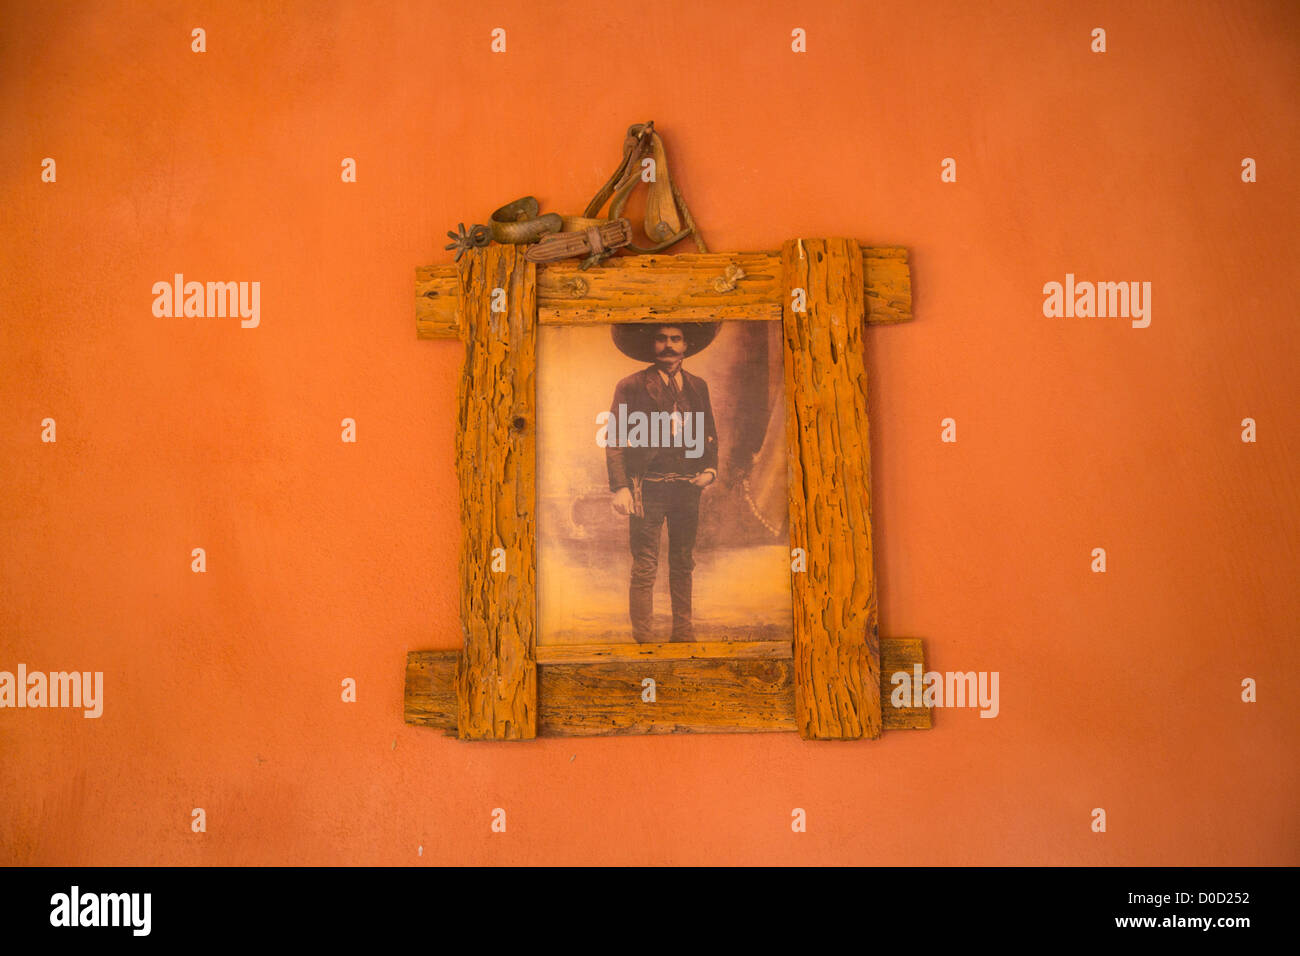 Emiliano Zapata photograph, Mexico, El Tuito, Costalegre, Jalisco, Mexico - Stock Image